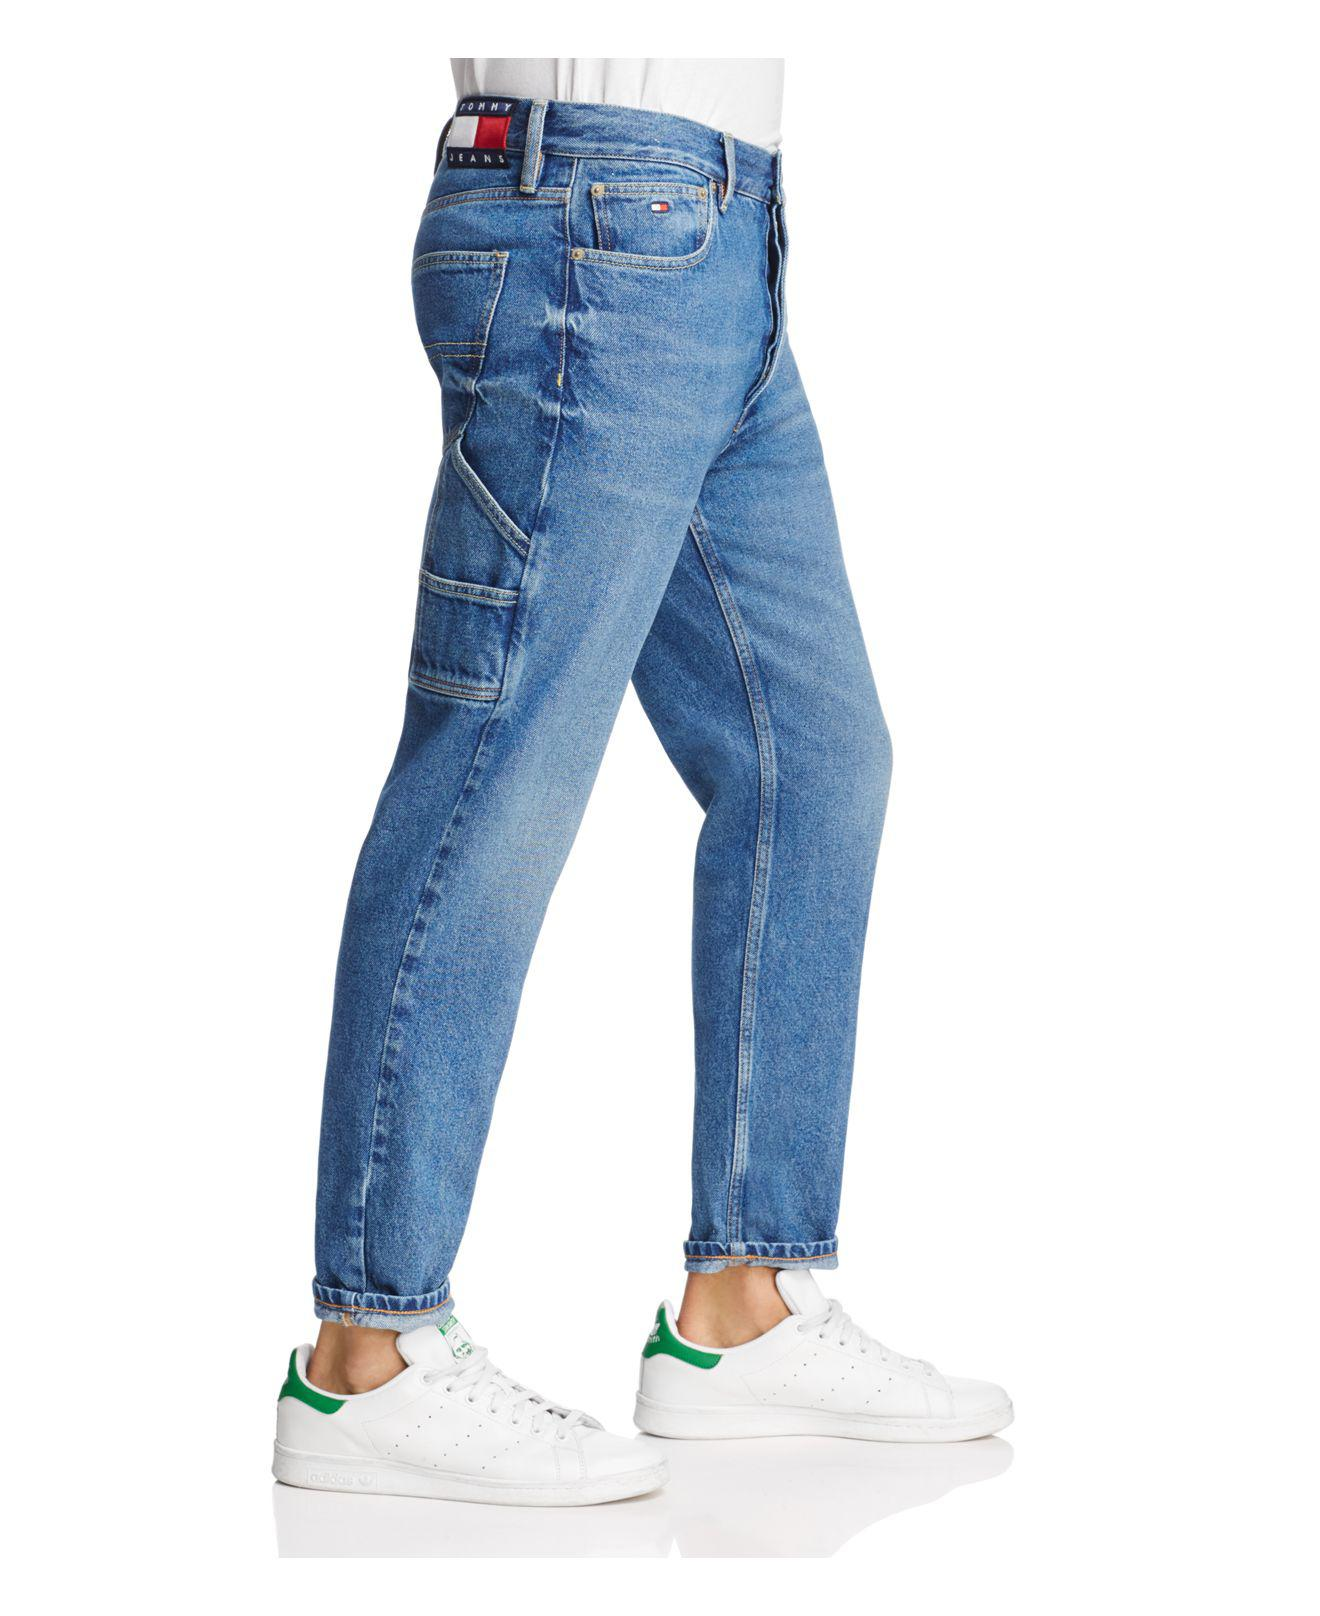 435f82ca Tommy Hilfiger Tapered Fit Carpenter Jeans In Dark Wash in Blue for ...